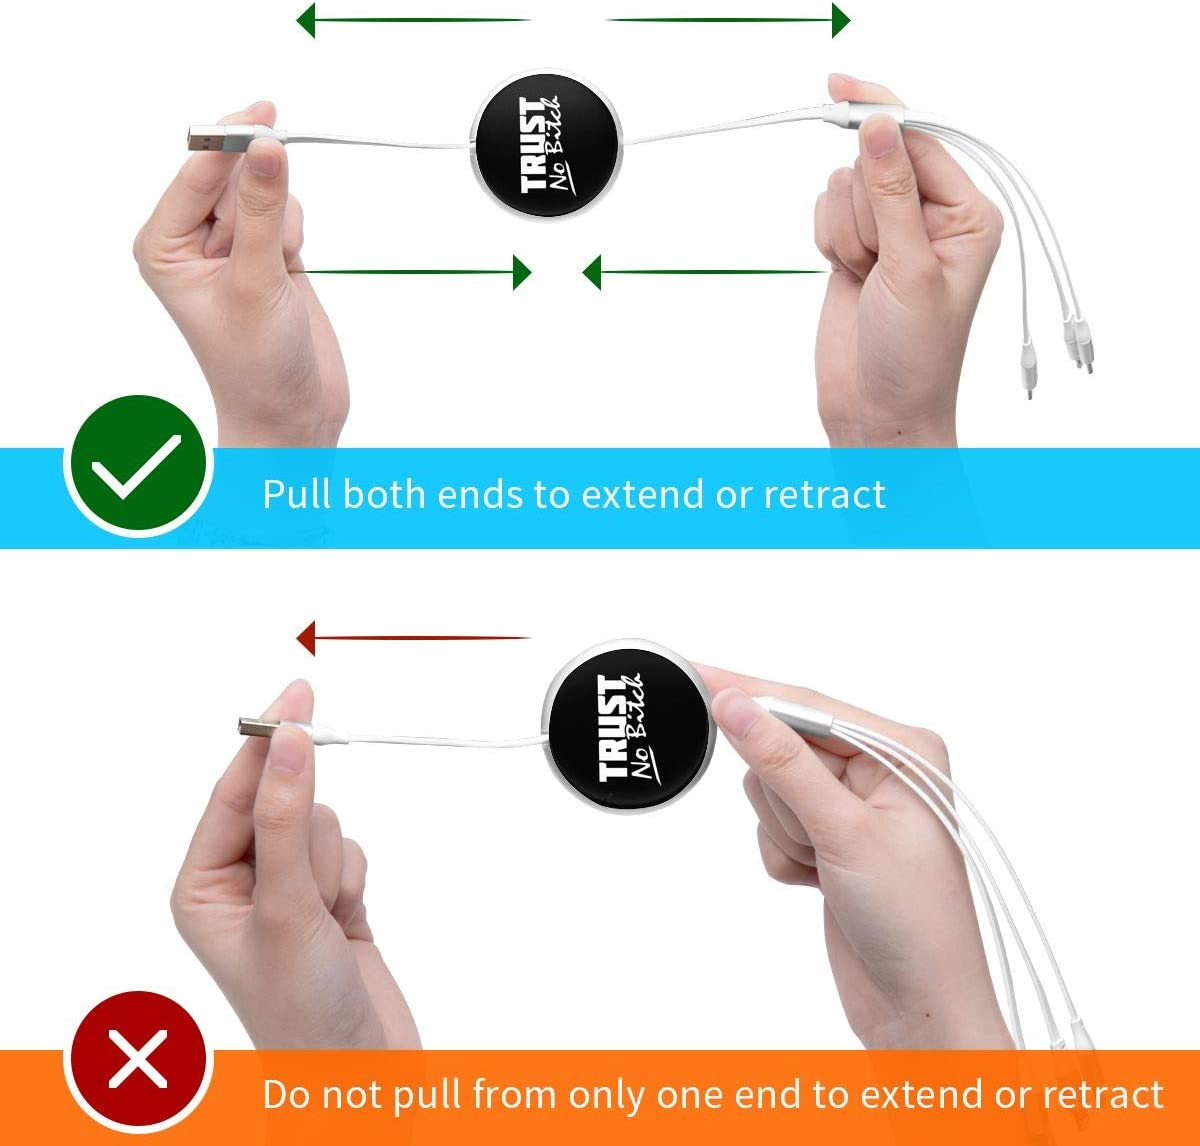 Trust No Bitch 3 in 1 Multiple USB Stretch Charger Cord with Micro,Type C,iOS Connectors with Cell Phone Tablets More